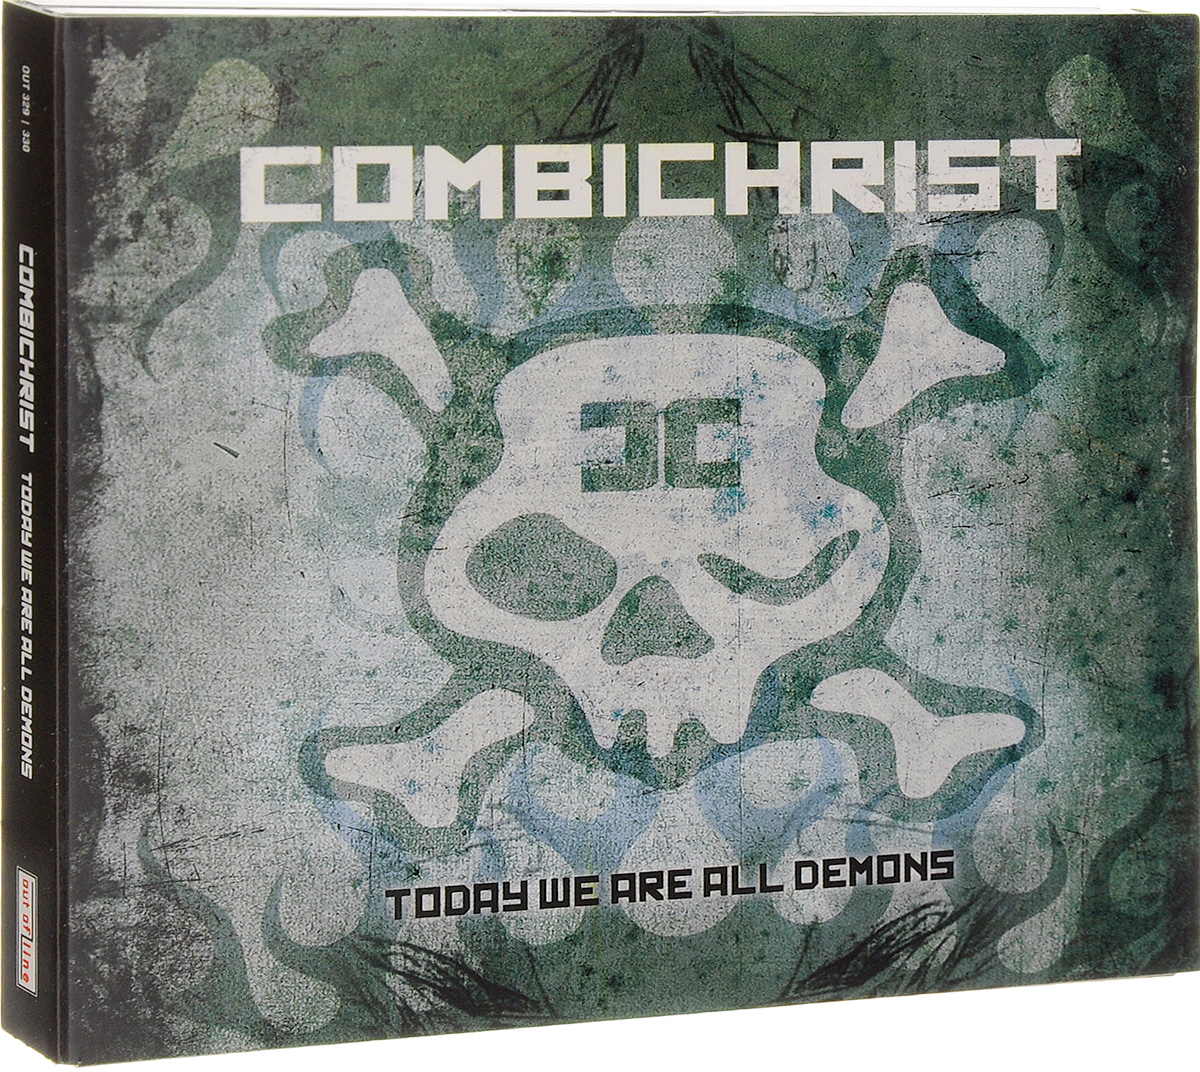 Combichrist Combichrist. Today We Are All Demons. Deluxe Edition (2 CD) cd led zeppelin ii deluxe edition